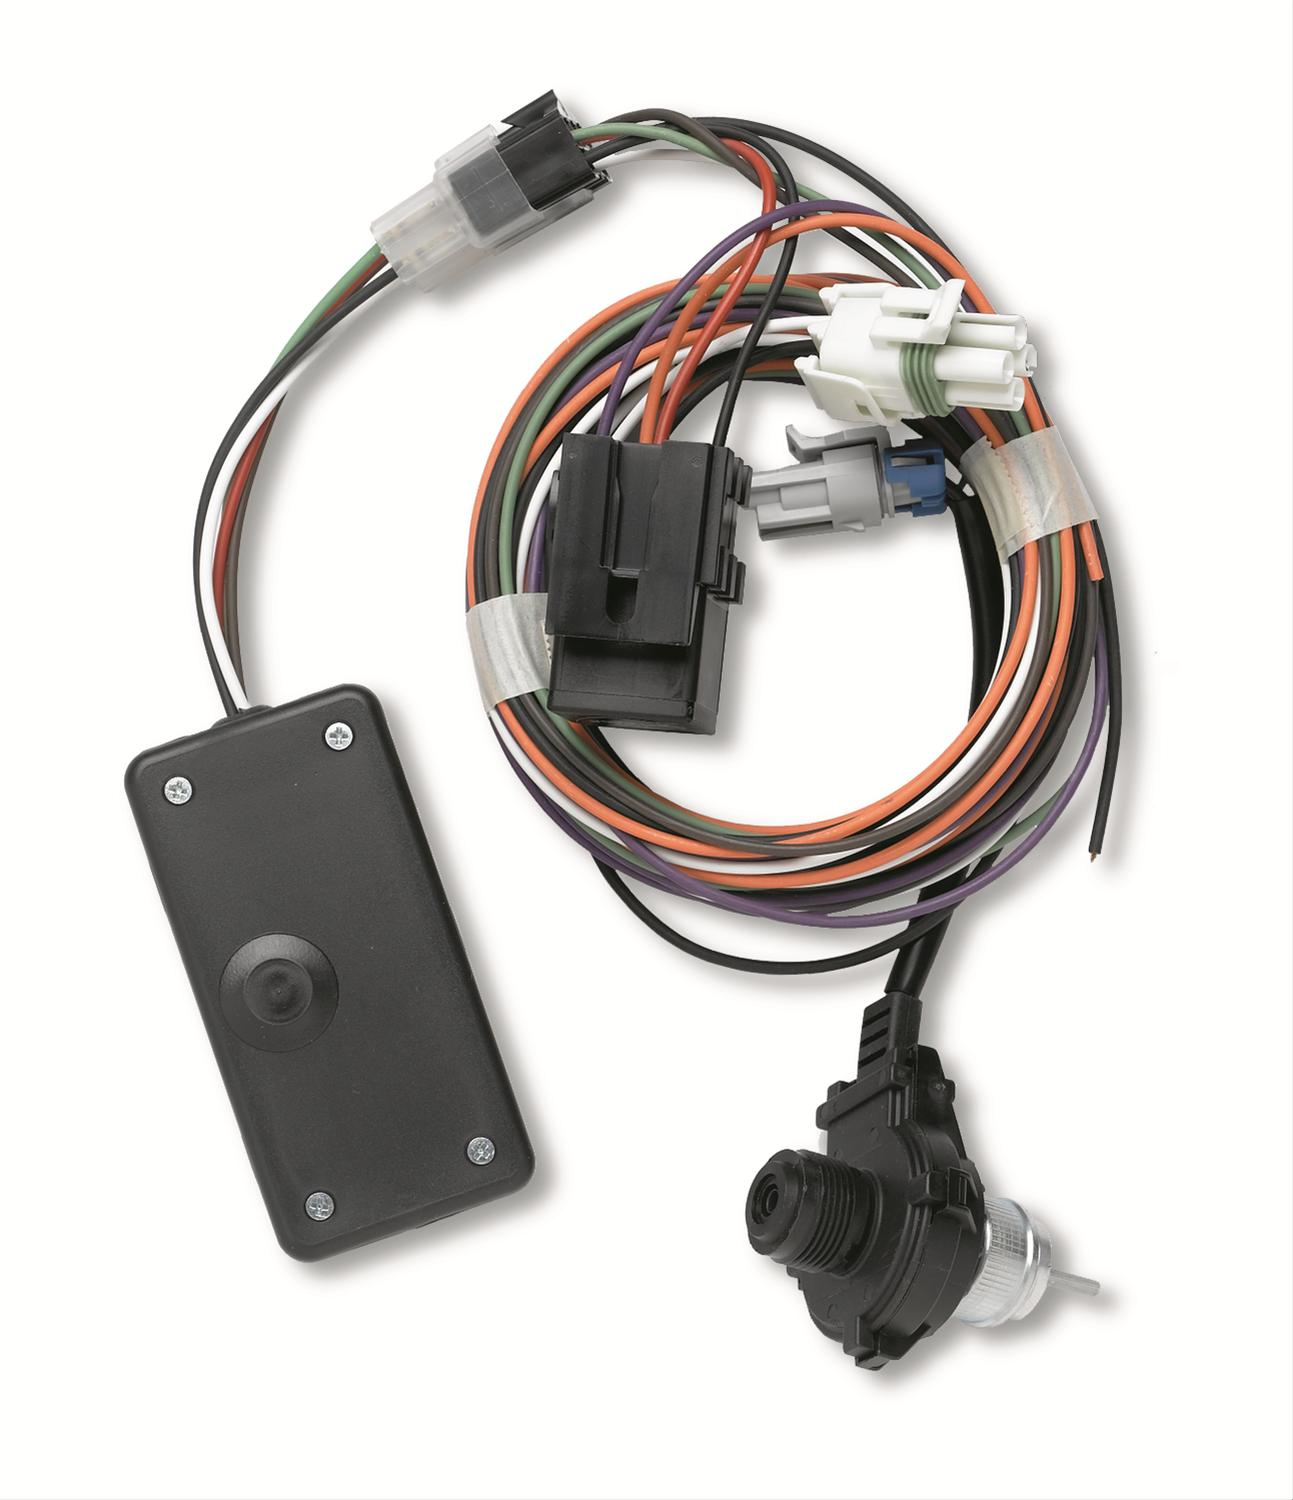 700r4 transmission lock up wiring diagram 2005 jeep grand cherokee starter lockup harness trans